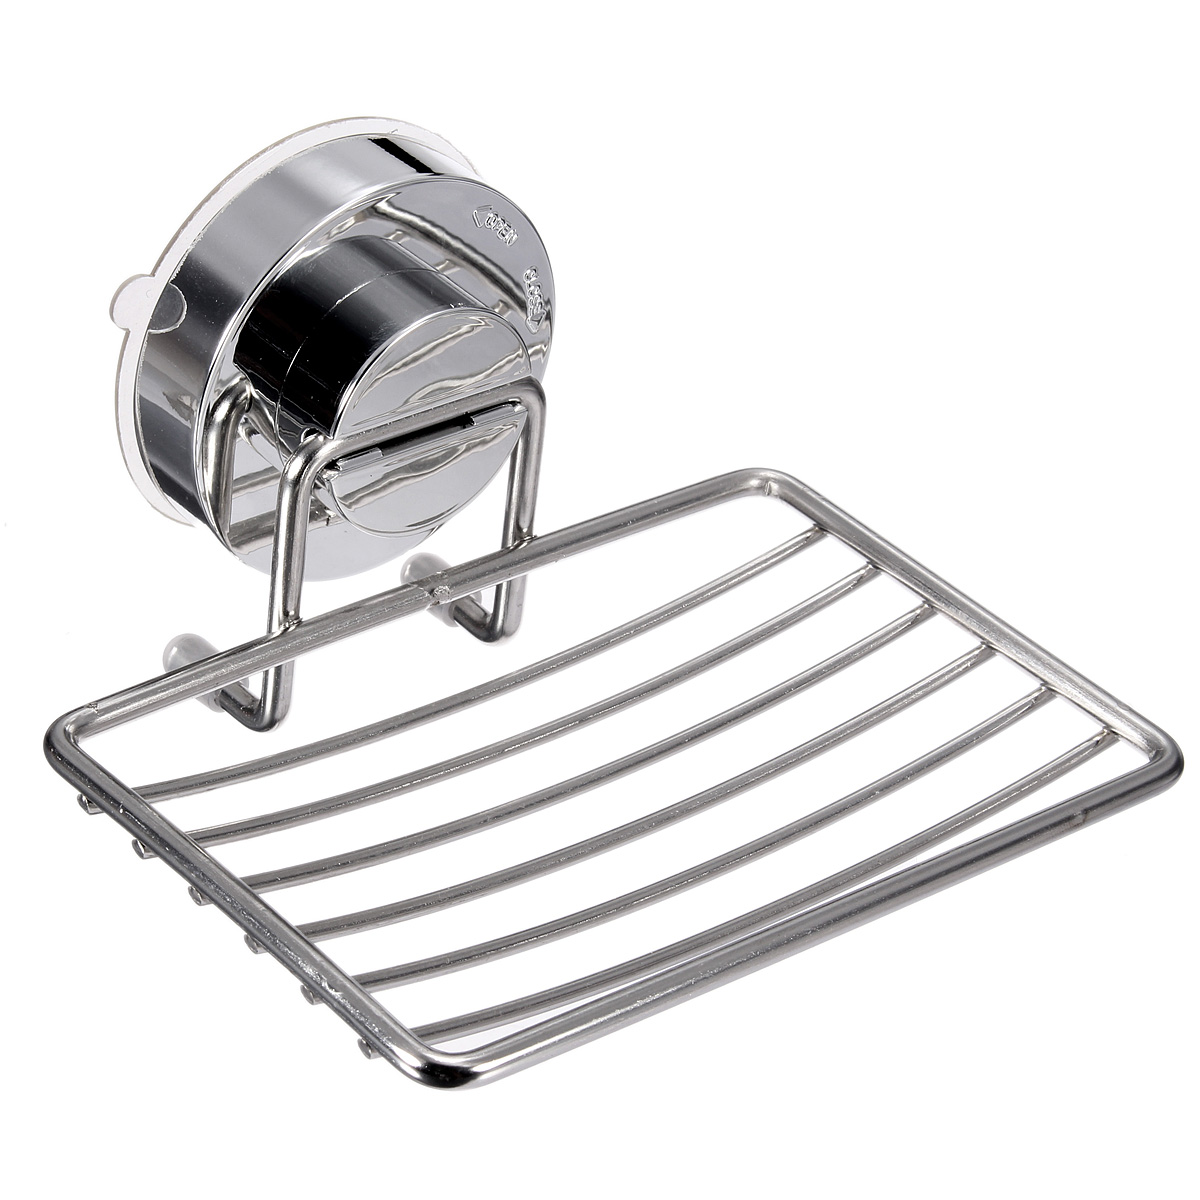 75kg large loadbearing stainless steel wall suction cup bathroom bath shower soap dishes holder basket